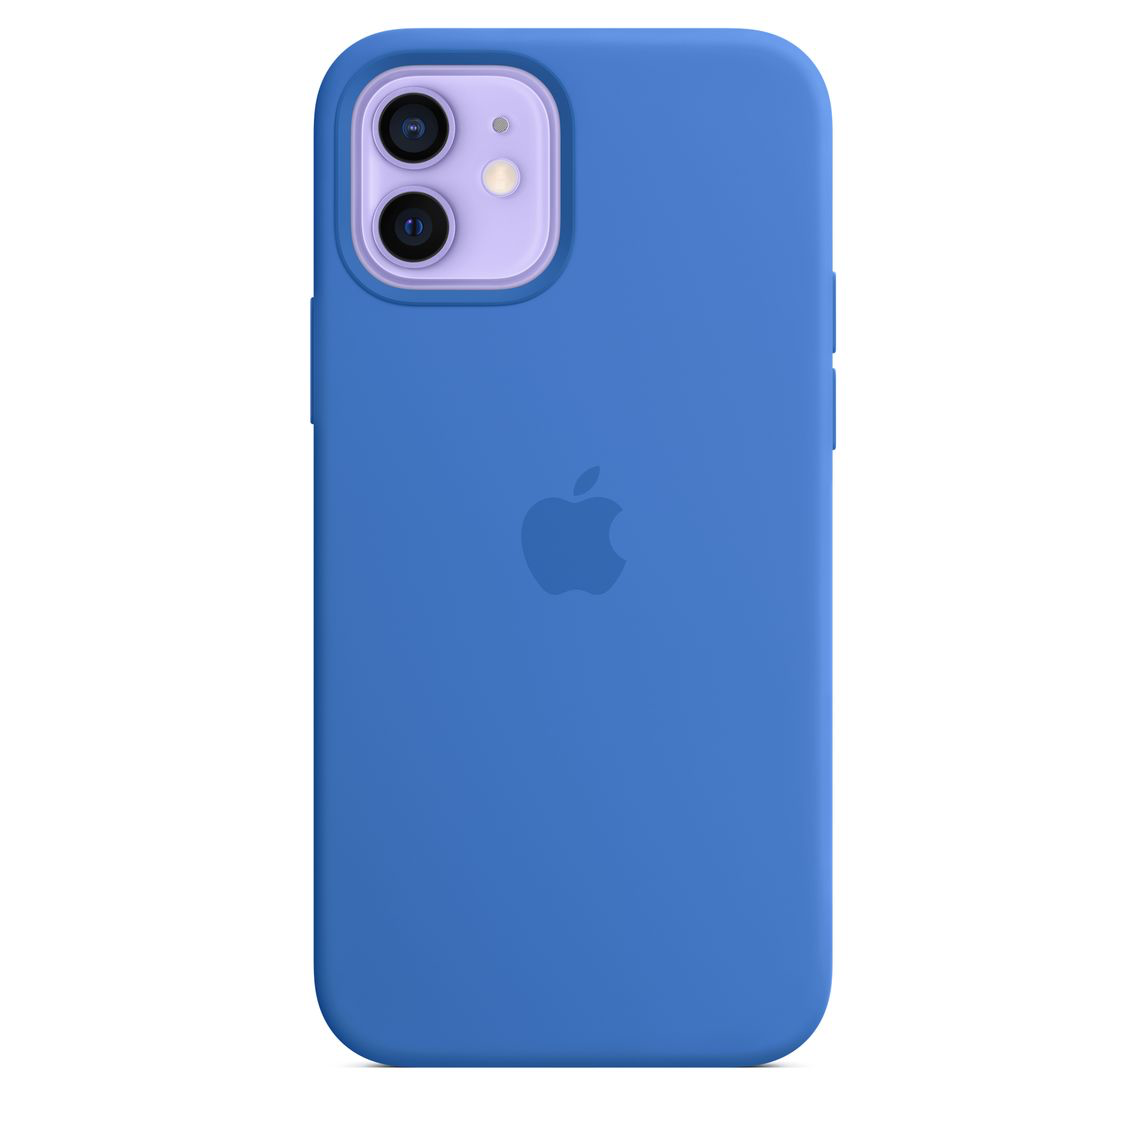 Apple iPhone 12 Pro Max Silicone Case with MagSafe Capri Blue